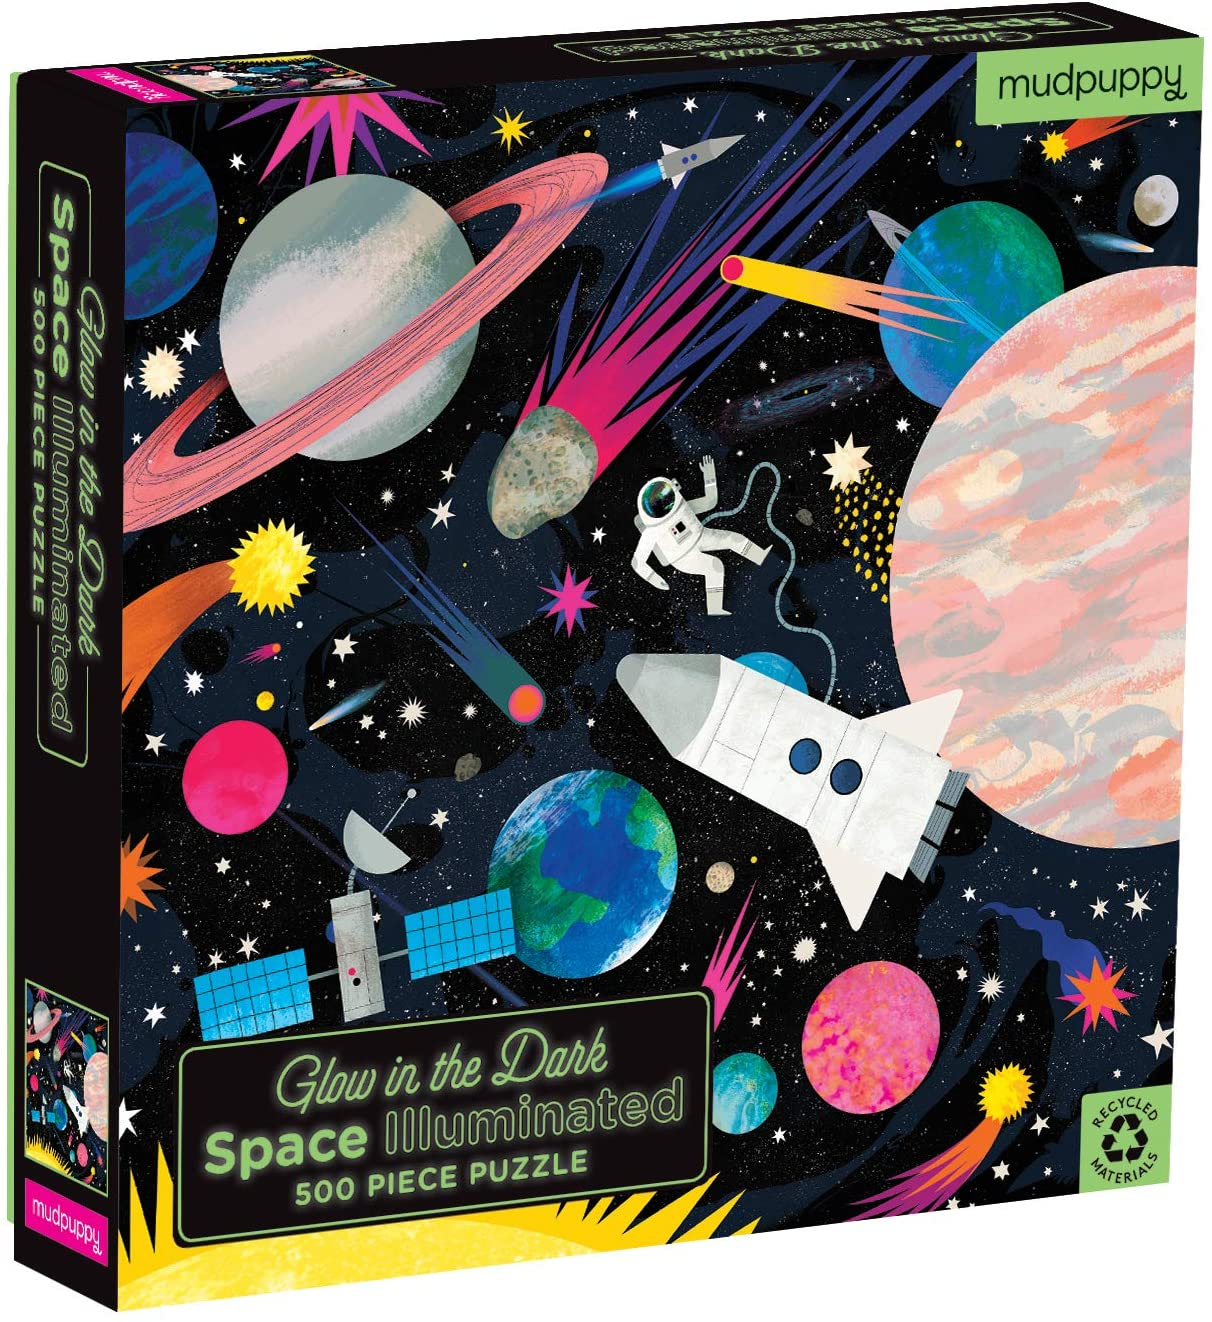 500 Piece Space Glow in the Dark Puzzle